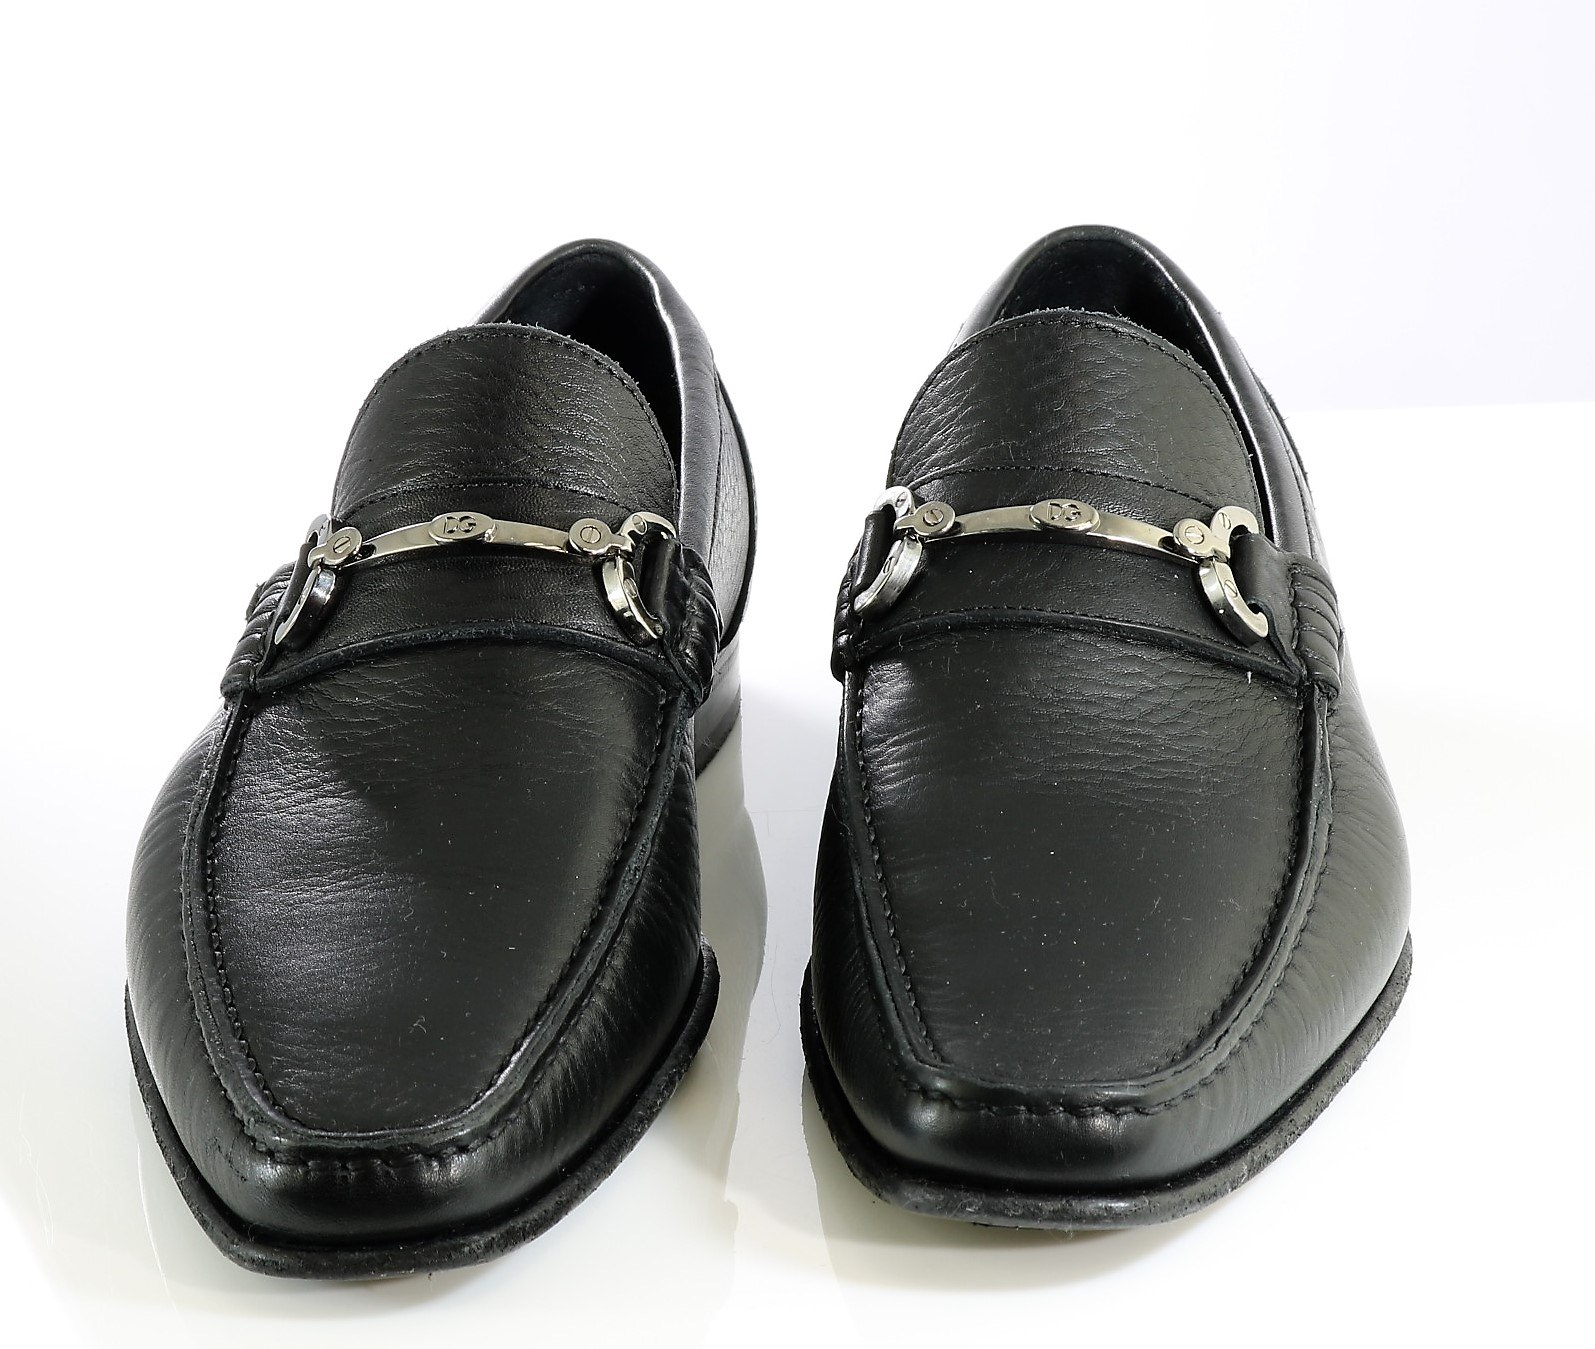 b45690a31e5 Black leather loafers with silver tone buckle Men s shoes Dolce Gabbana